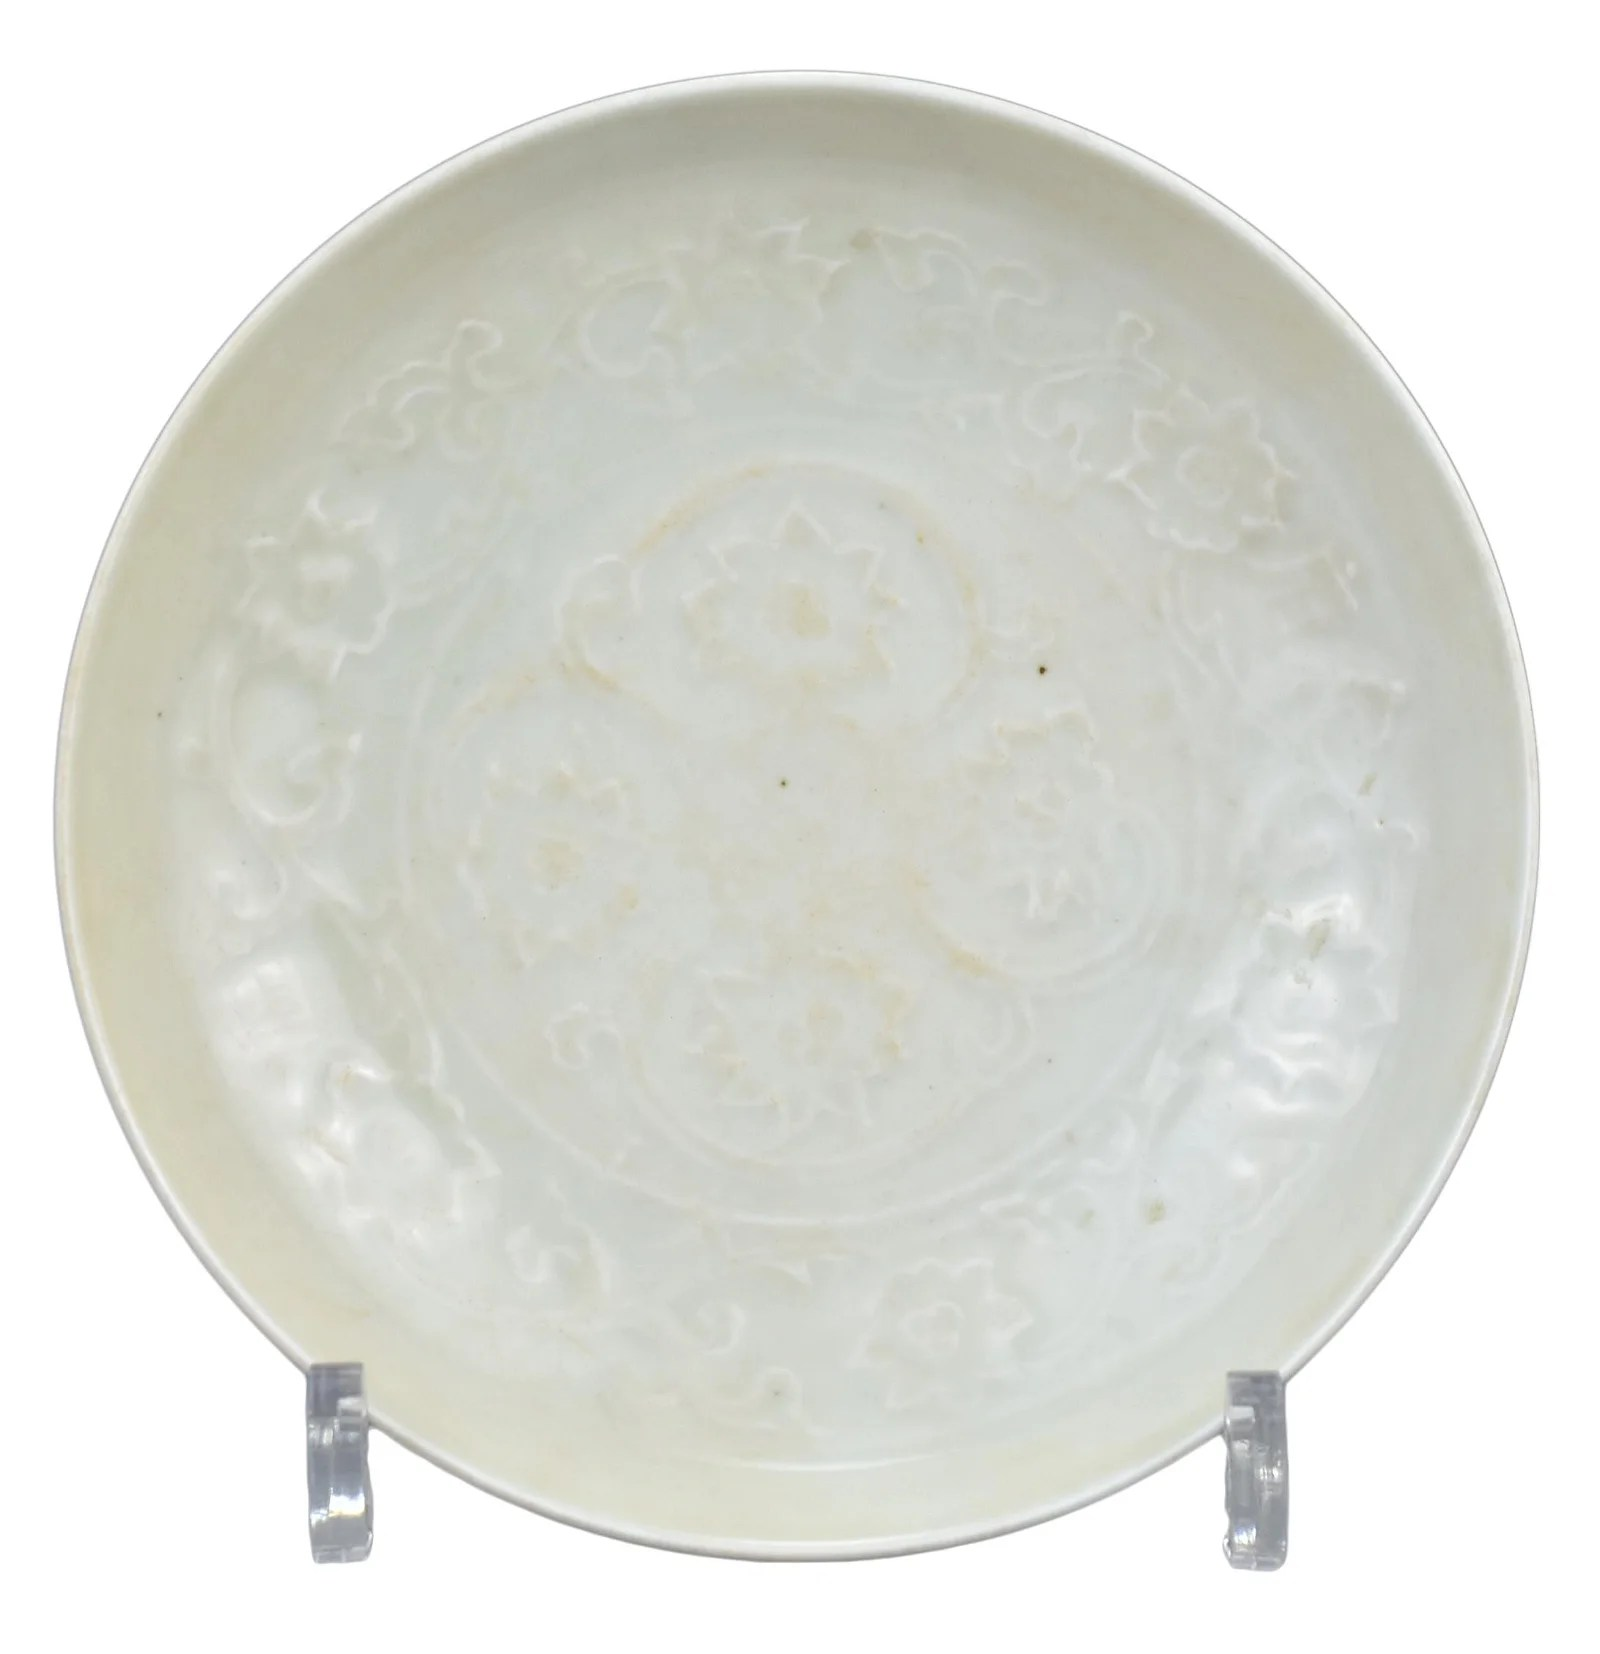 A Chinese Shufu Type Porcelain Bowl – Yuan Dynasty or